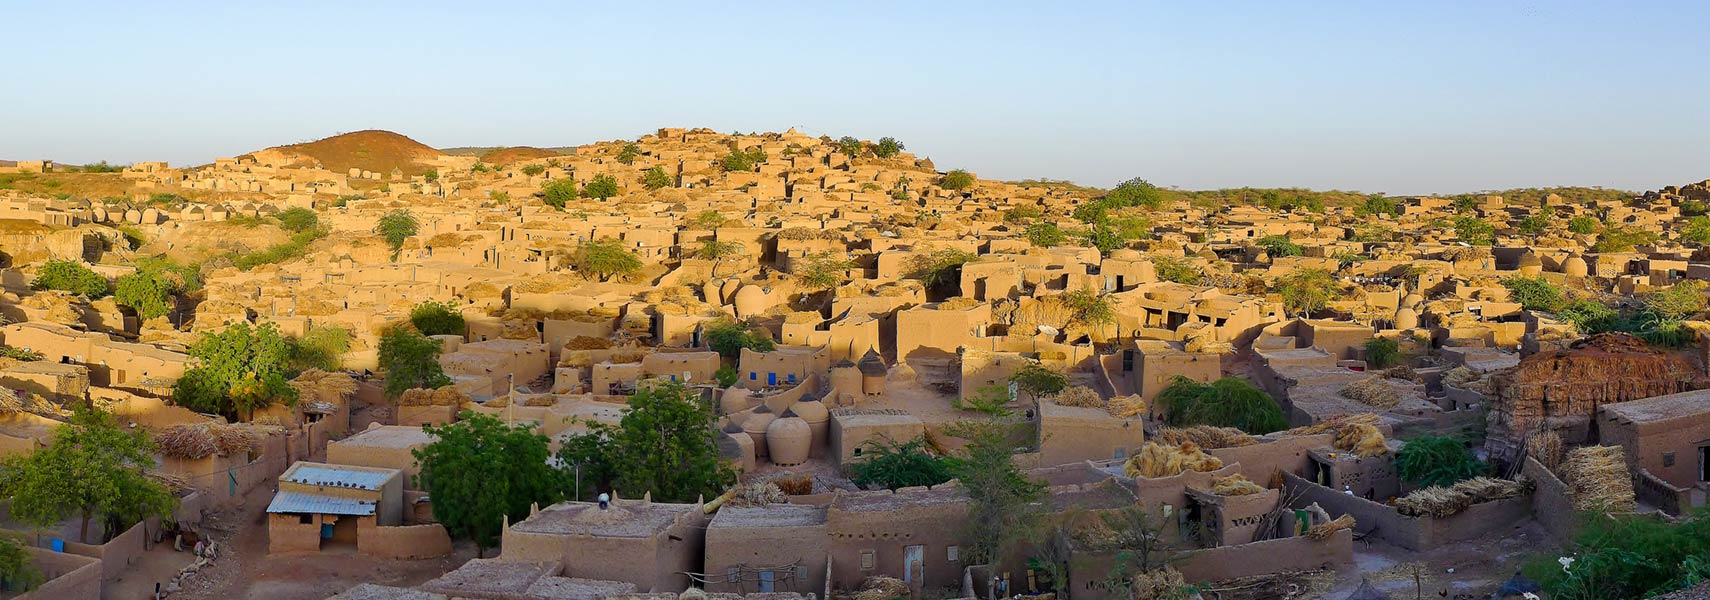 Panorama of Bouza village, Tahoua Region, Niger